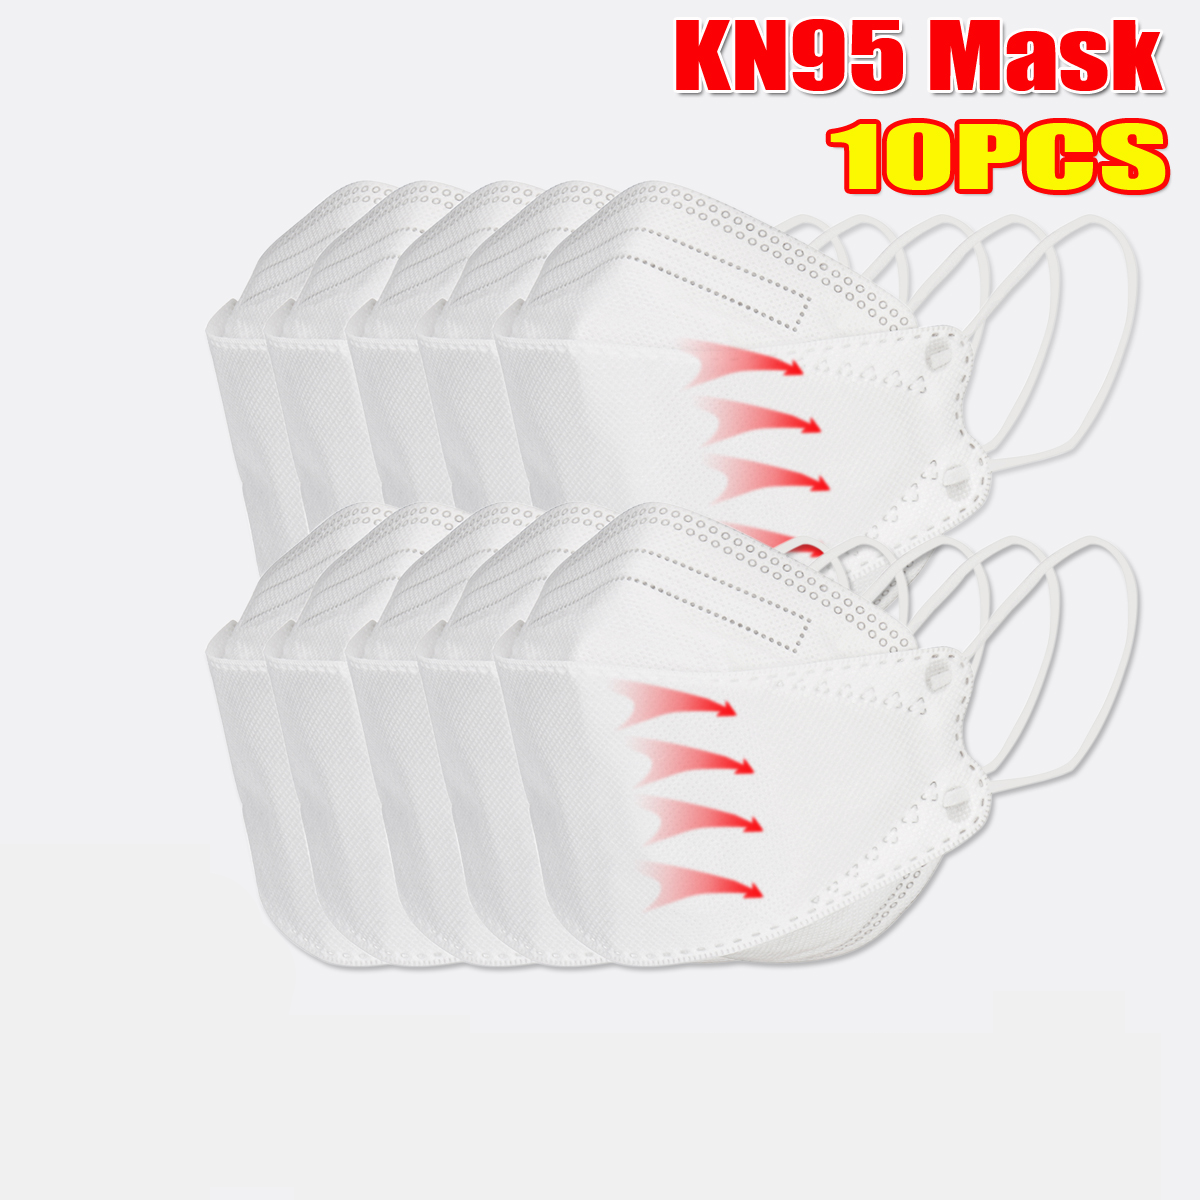 <US Instock> 10 Pcs / Pack of KN95 MasksCE Certification Passed The GB-2626-KN95 Test PM2.5 Filter Mask